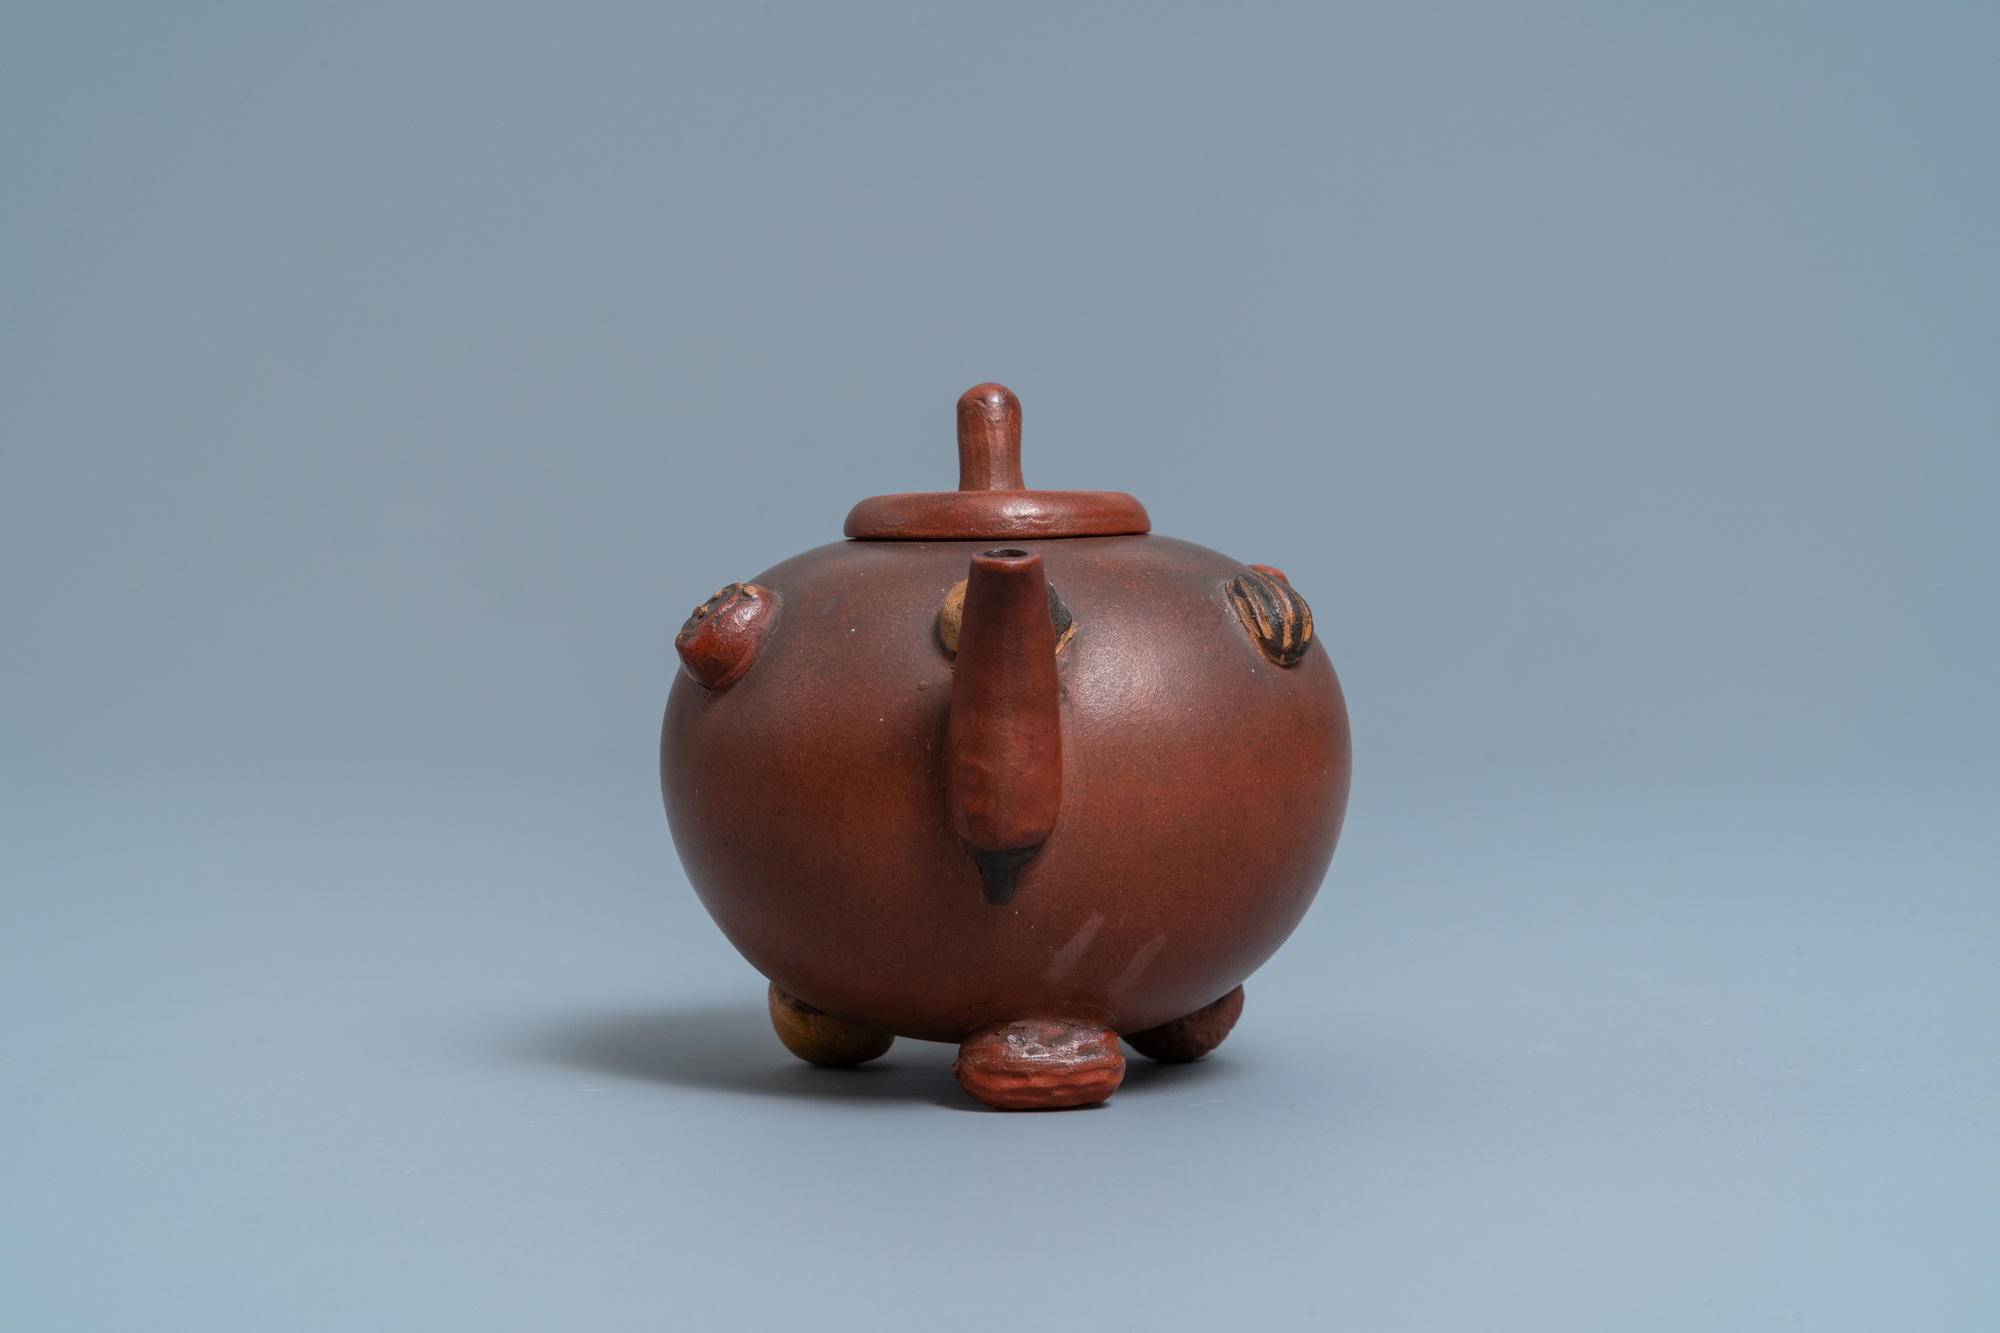 A Chinese Yixing stoneware teapot and cover with applied nuts, 19/20th C. - Image 3 of 7